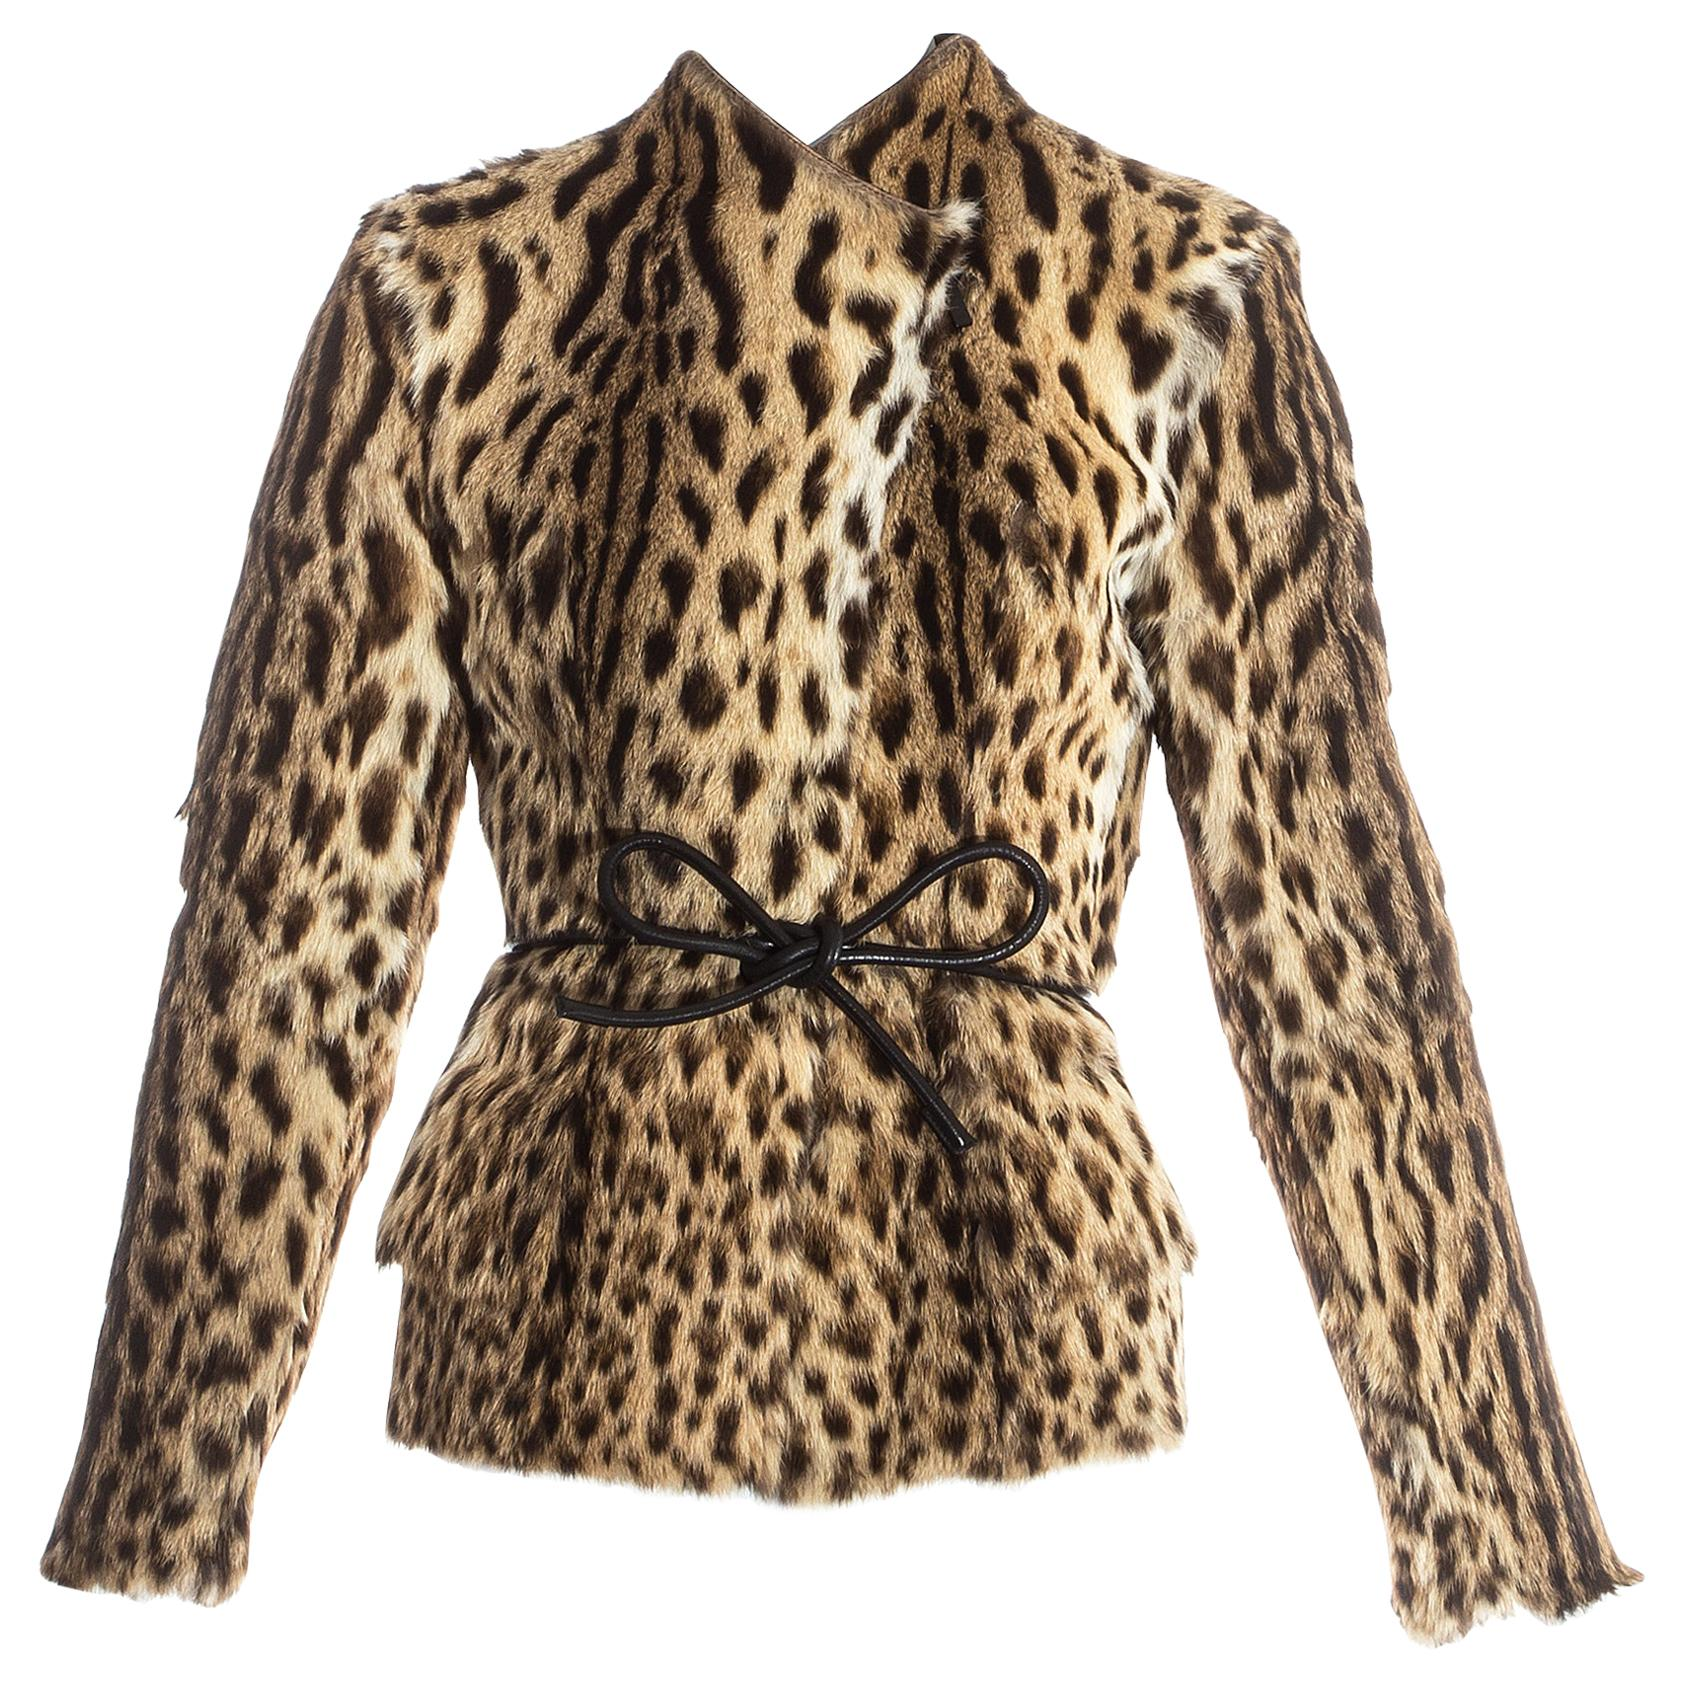 243cc41fc95 Gucci by Tom Ford Gold Metallic Leather Jacket Blazer For Sale at 1stdibs